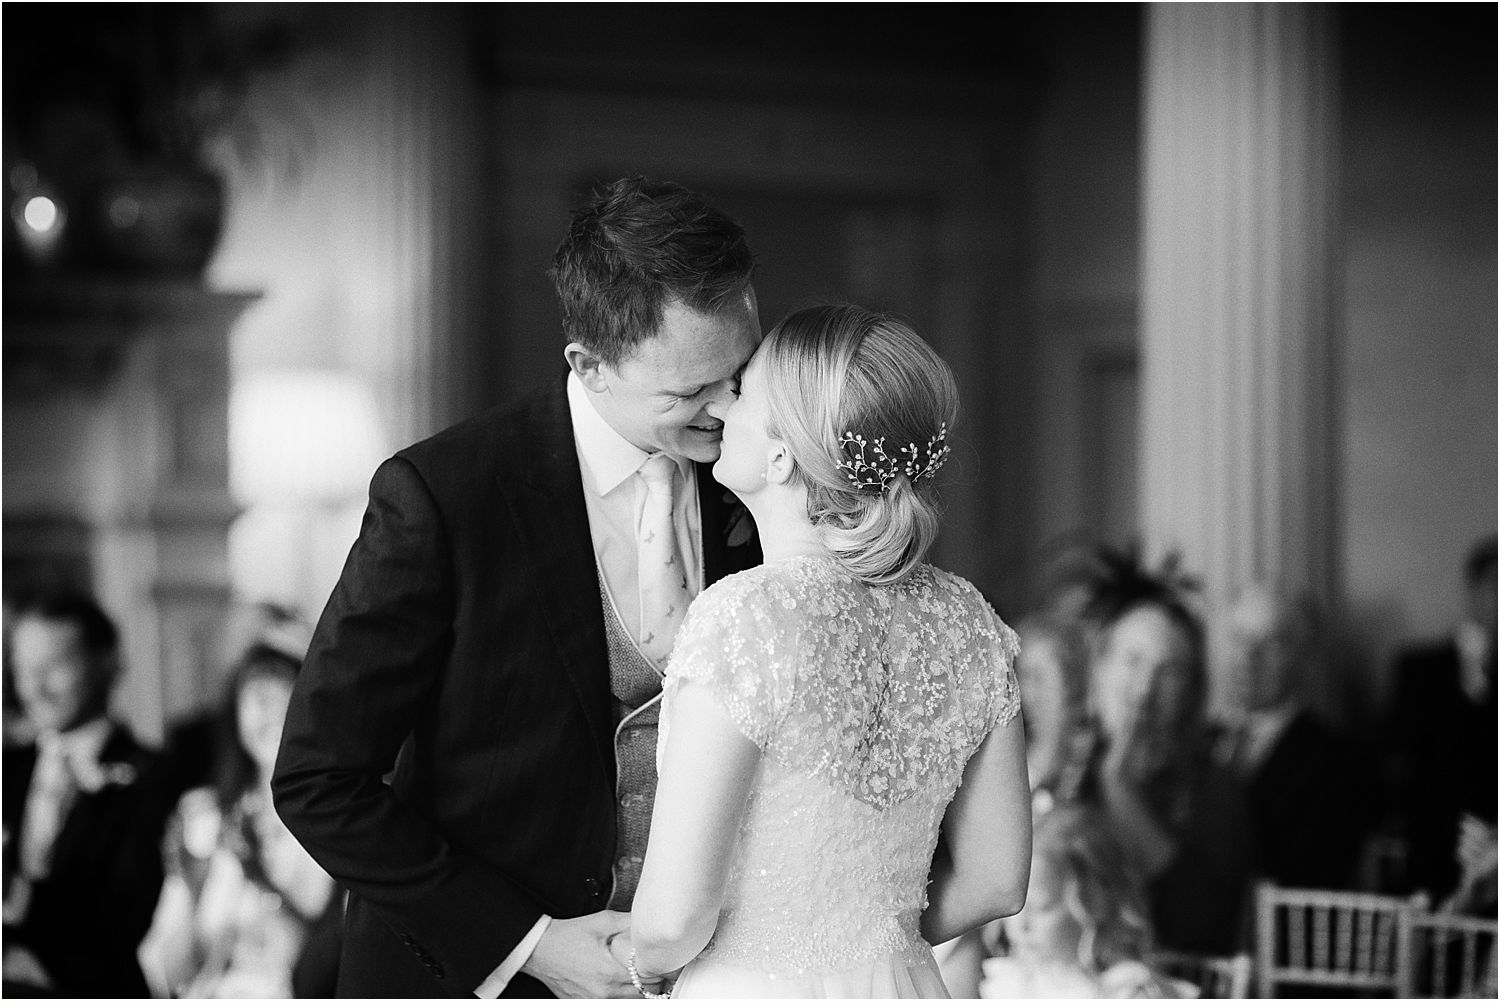 Bride and groom exchange a kiss at their Hampton Court wedding Surrey, hair and make up by Lillie Lindh and Kari Rodnes